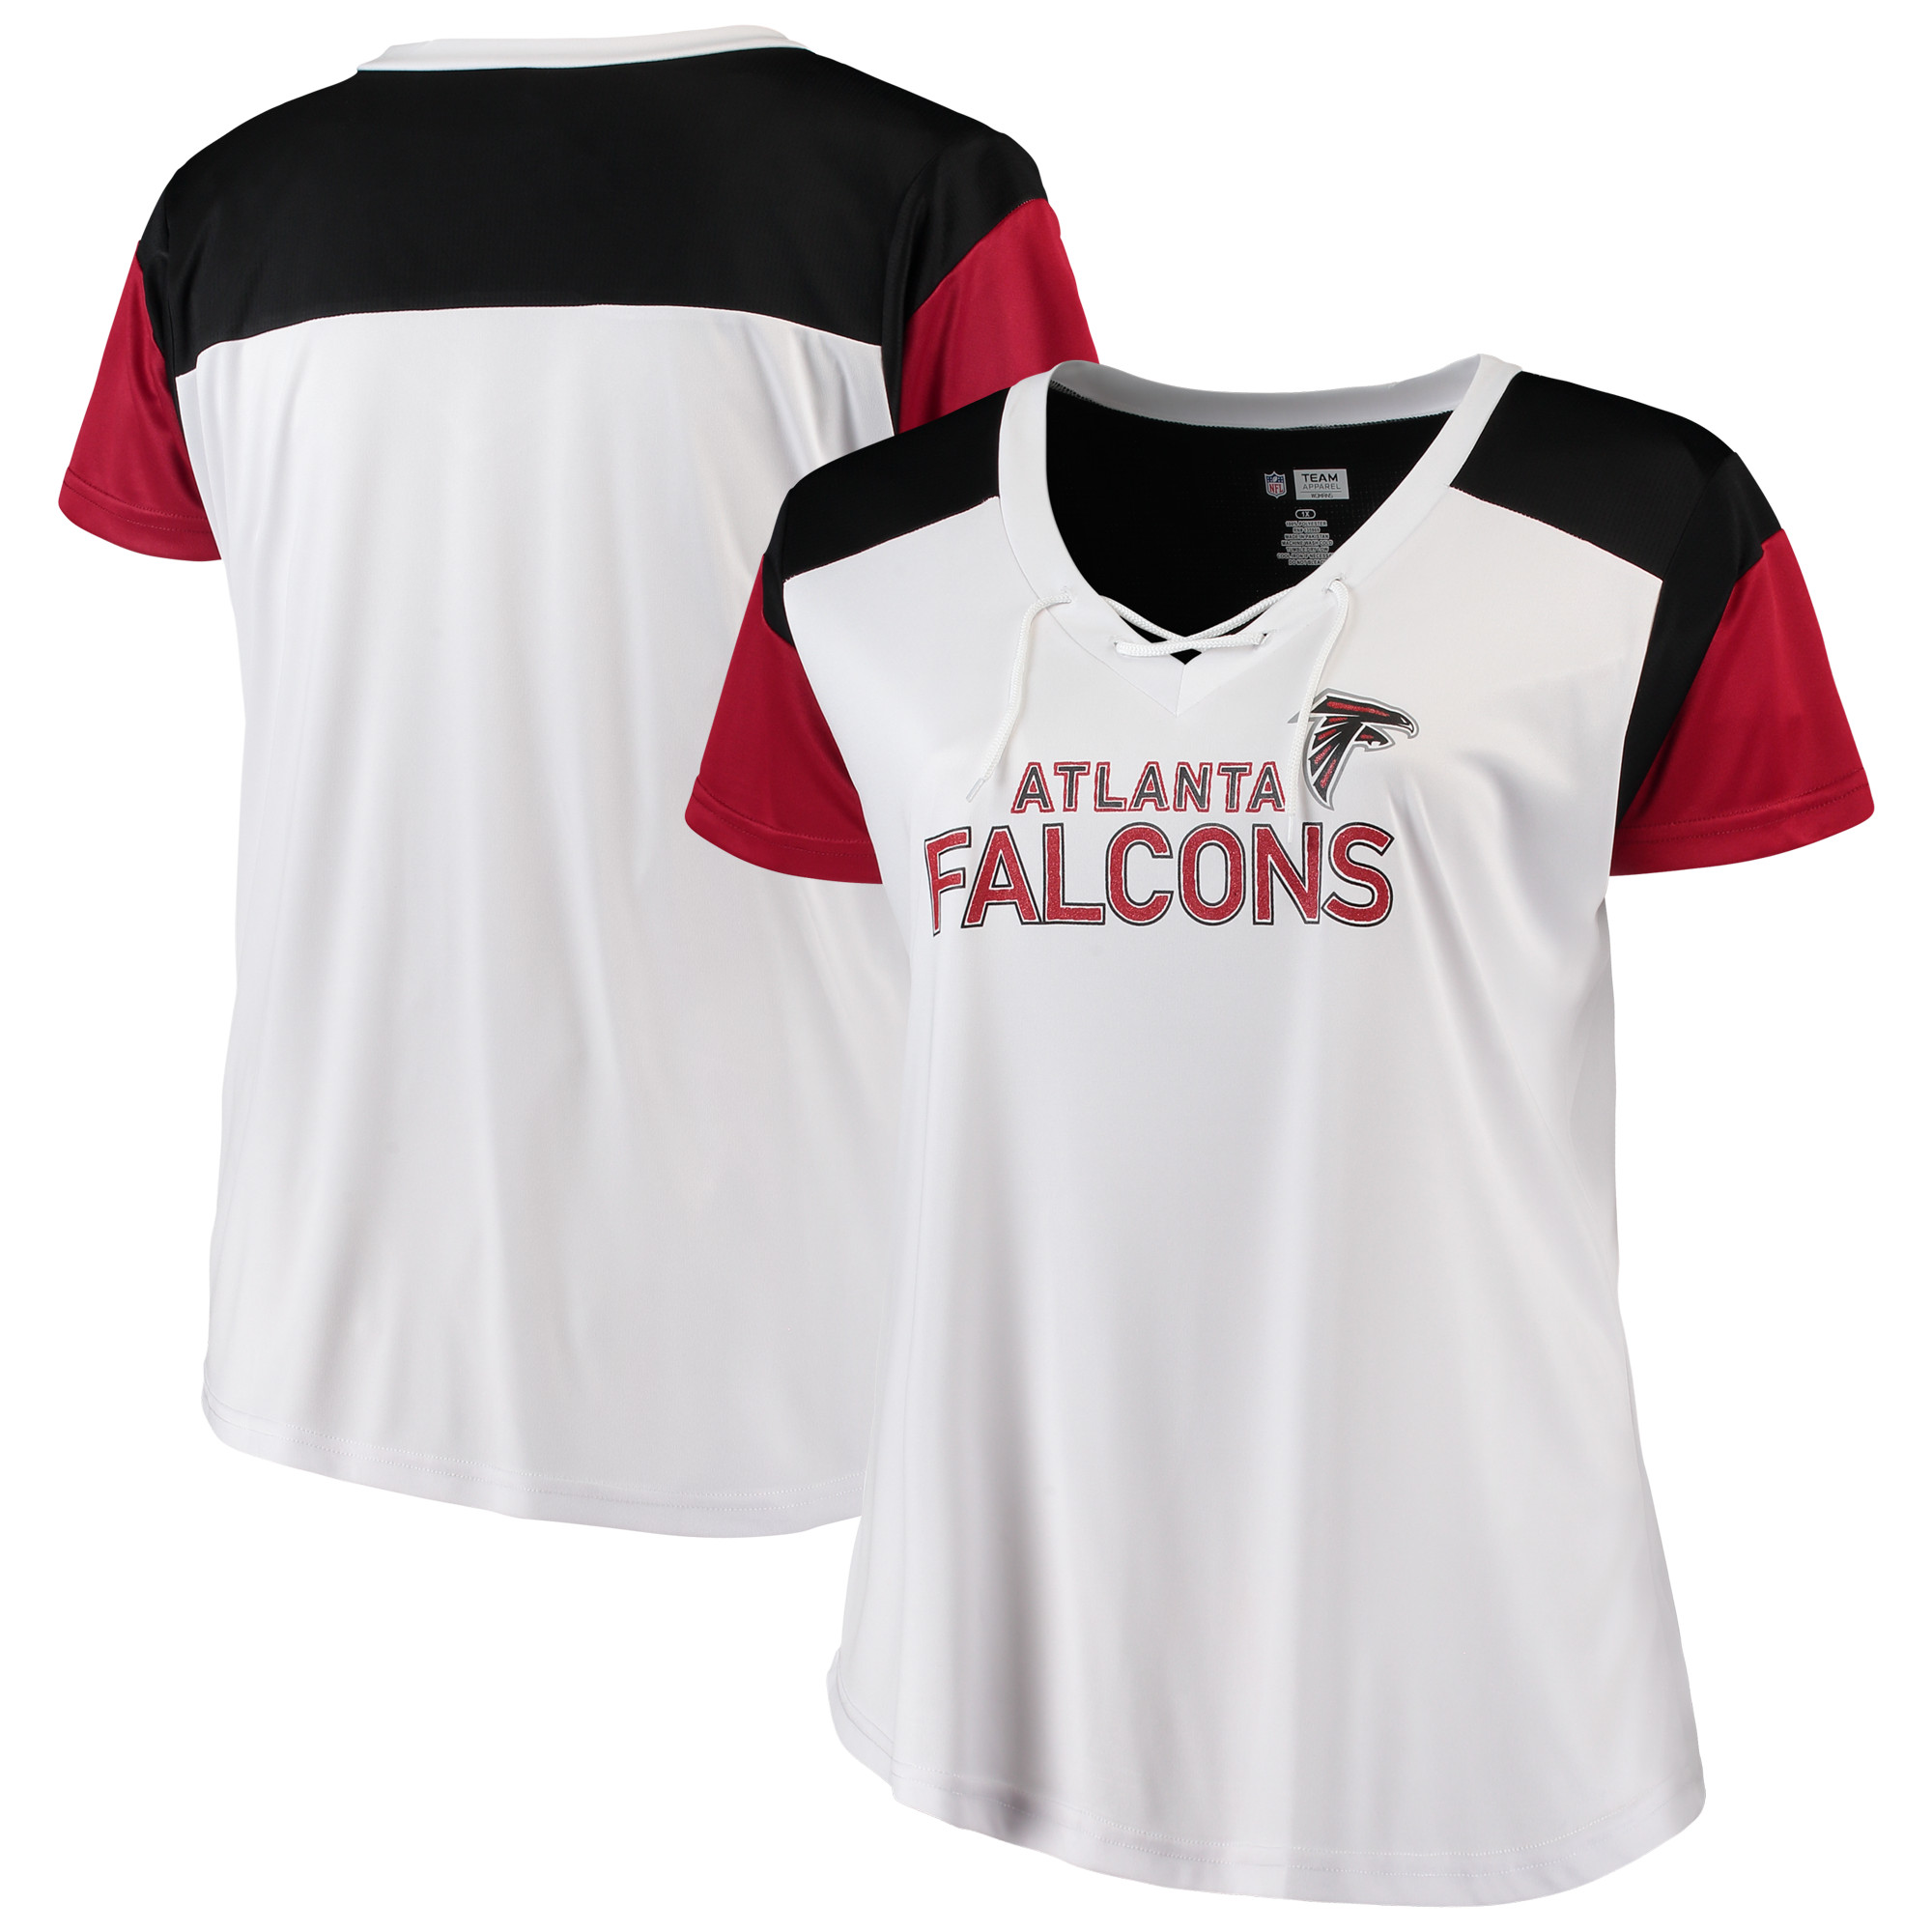 Atlanta Falcons Majestic Women's Lace-Up V-Neck T-Shirt - White/Red